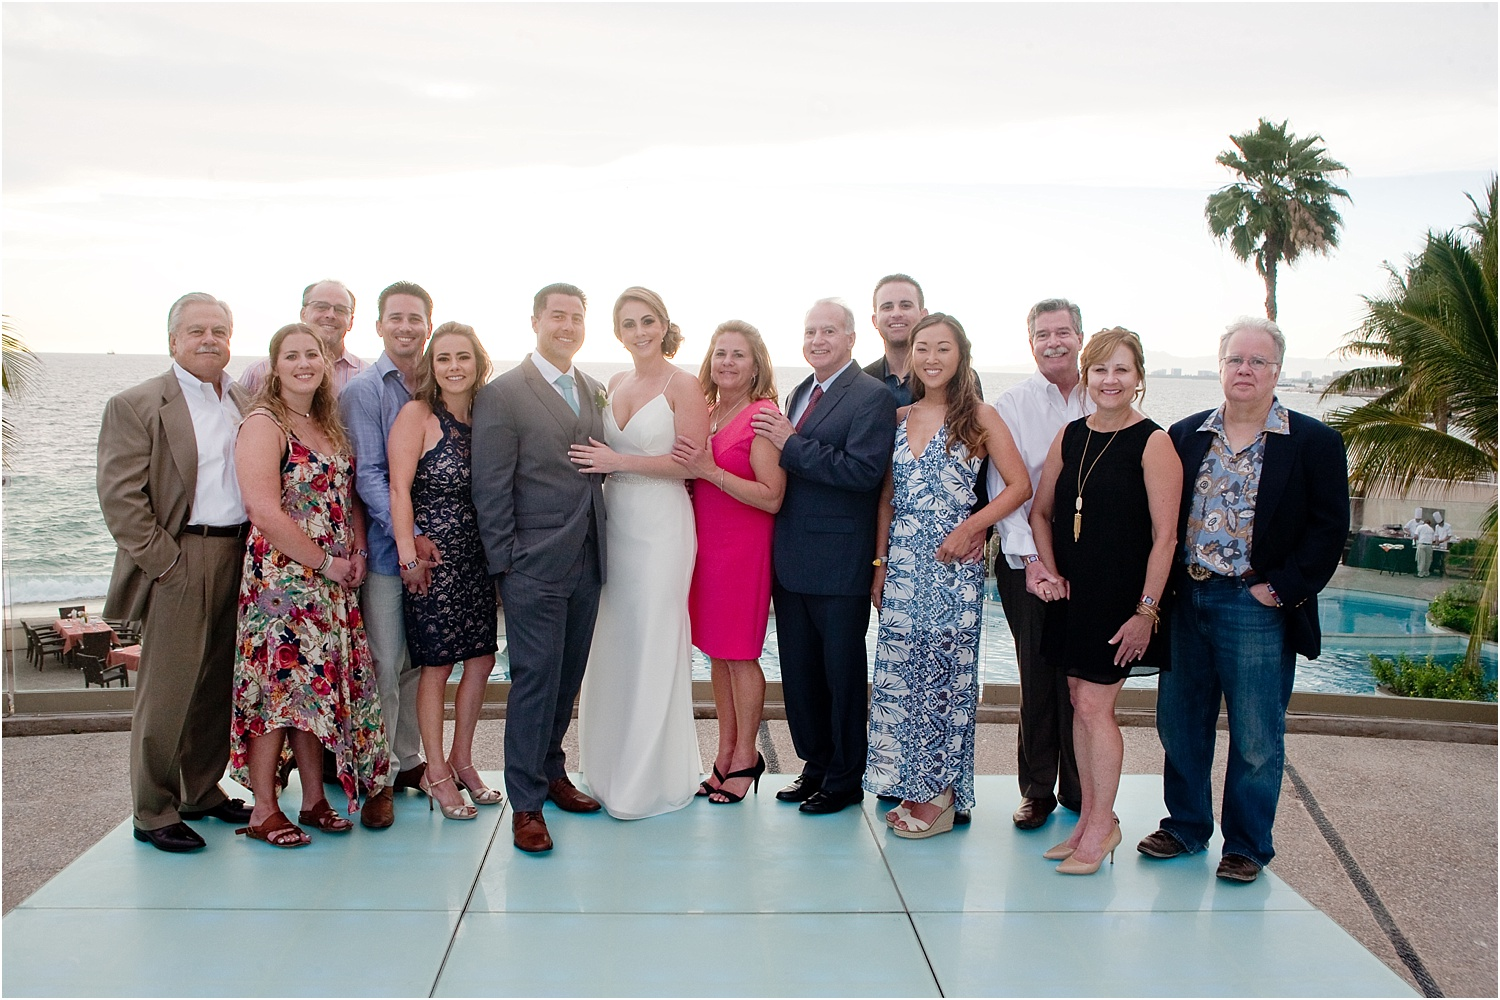 How to photograph family and bridal party portraits quickly at weddings 24